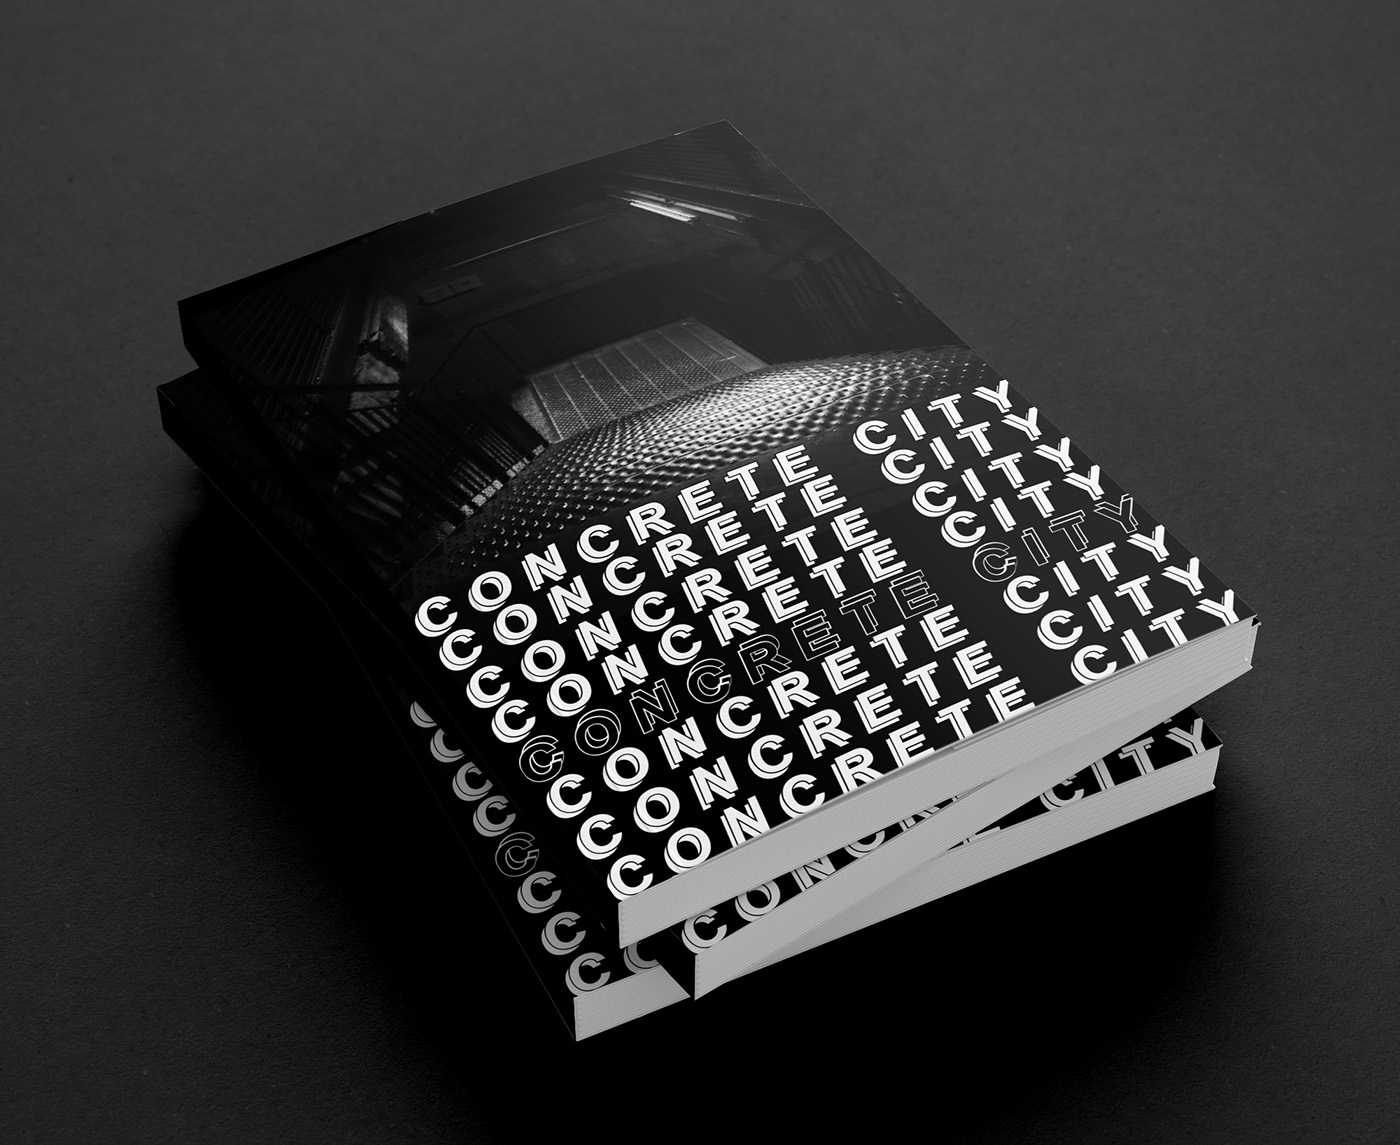 graphicdesign experiment Photography  editorialdesign print magazine book type font ArtDirection